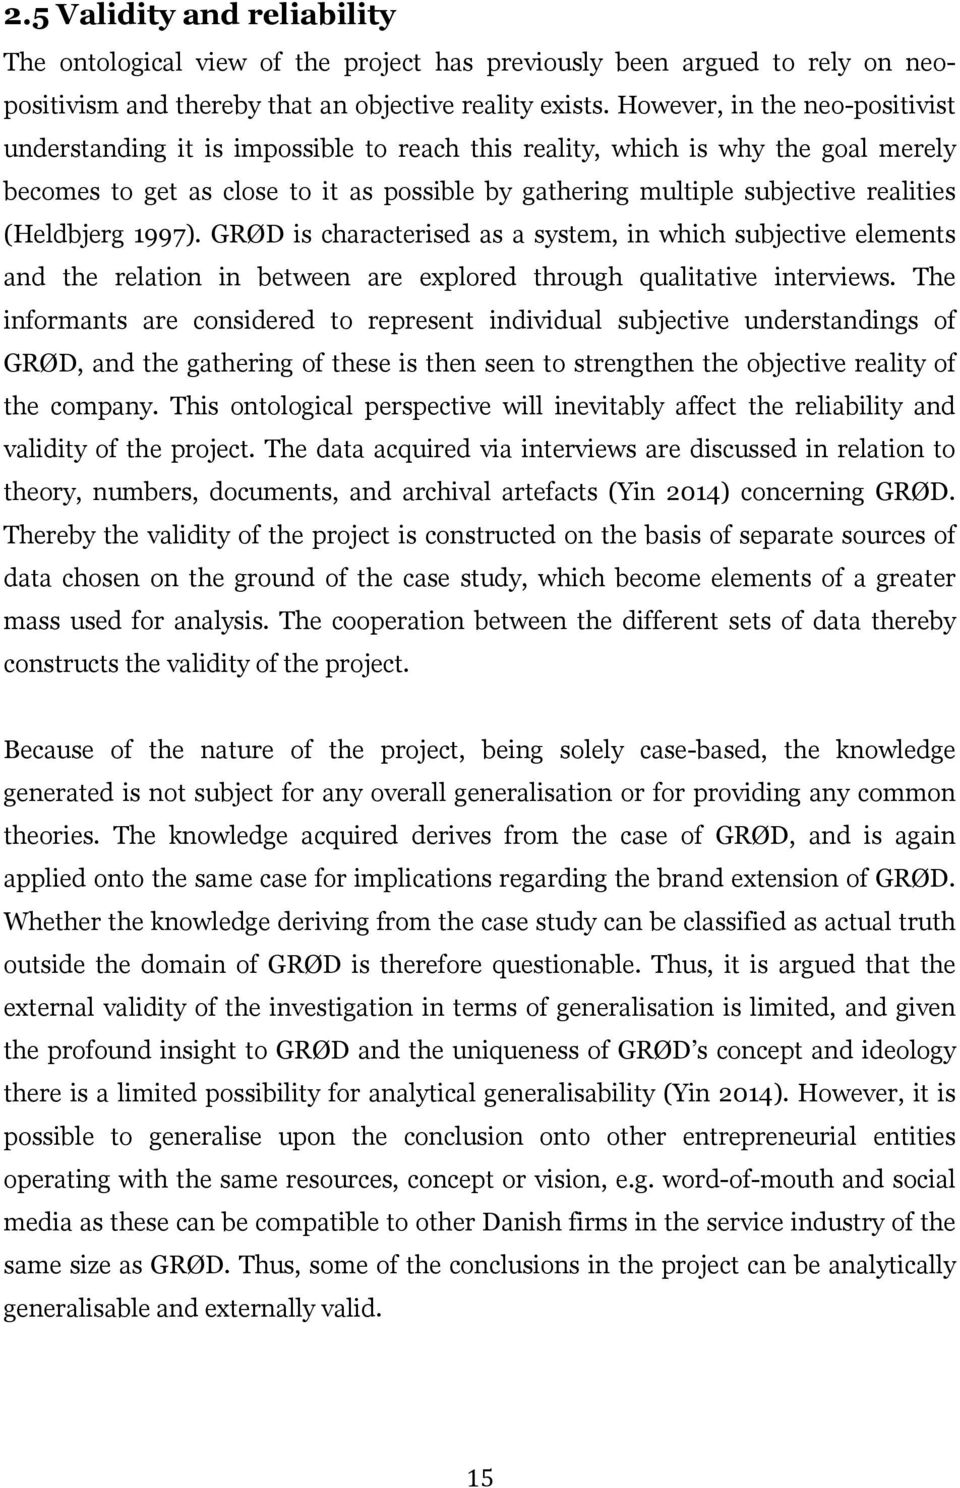 (Heldbjerg 1997). GRØD is characterised as a system, in which subjective elements and the relation in between are explored through qualitative interviews.